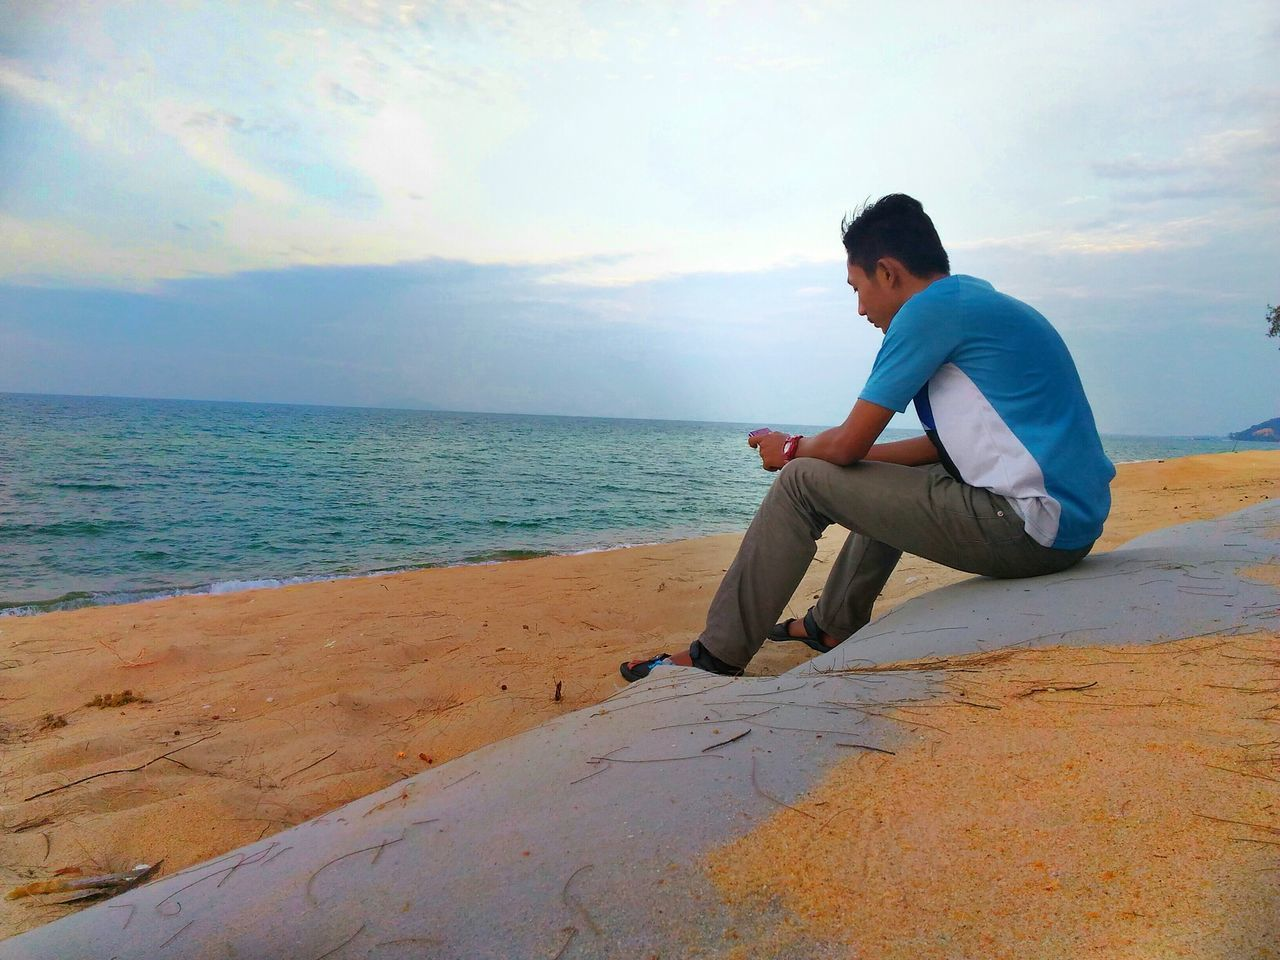 sea, horizon over water, one person, full length, sitting, sky, water, side view, nature, casual clothing, real people, beach, wireless technology, technology, leisure activity, beauty in nature, relaxation, scenics, outdoors, young adult, day, one man only, adult, people